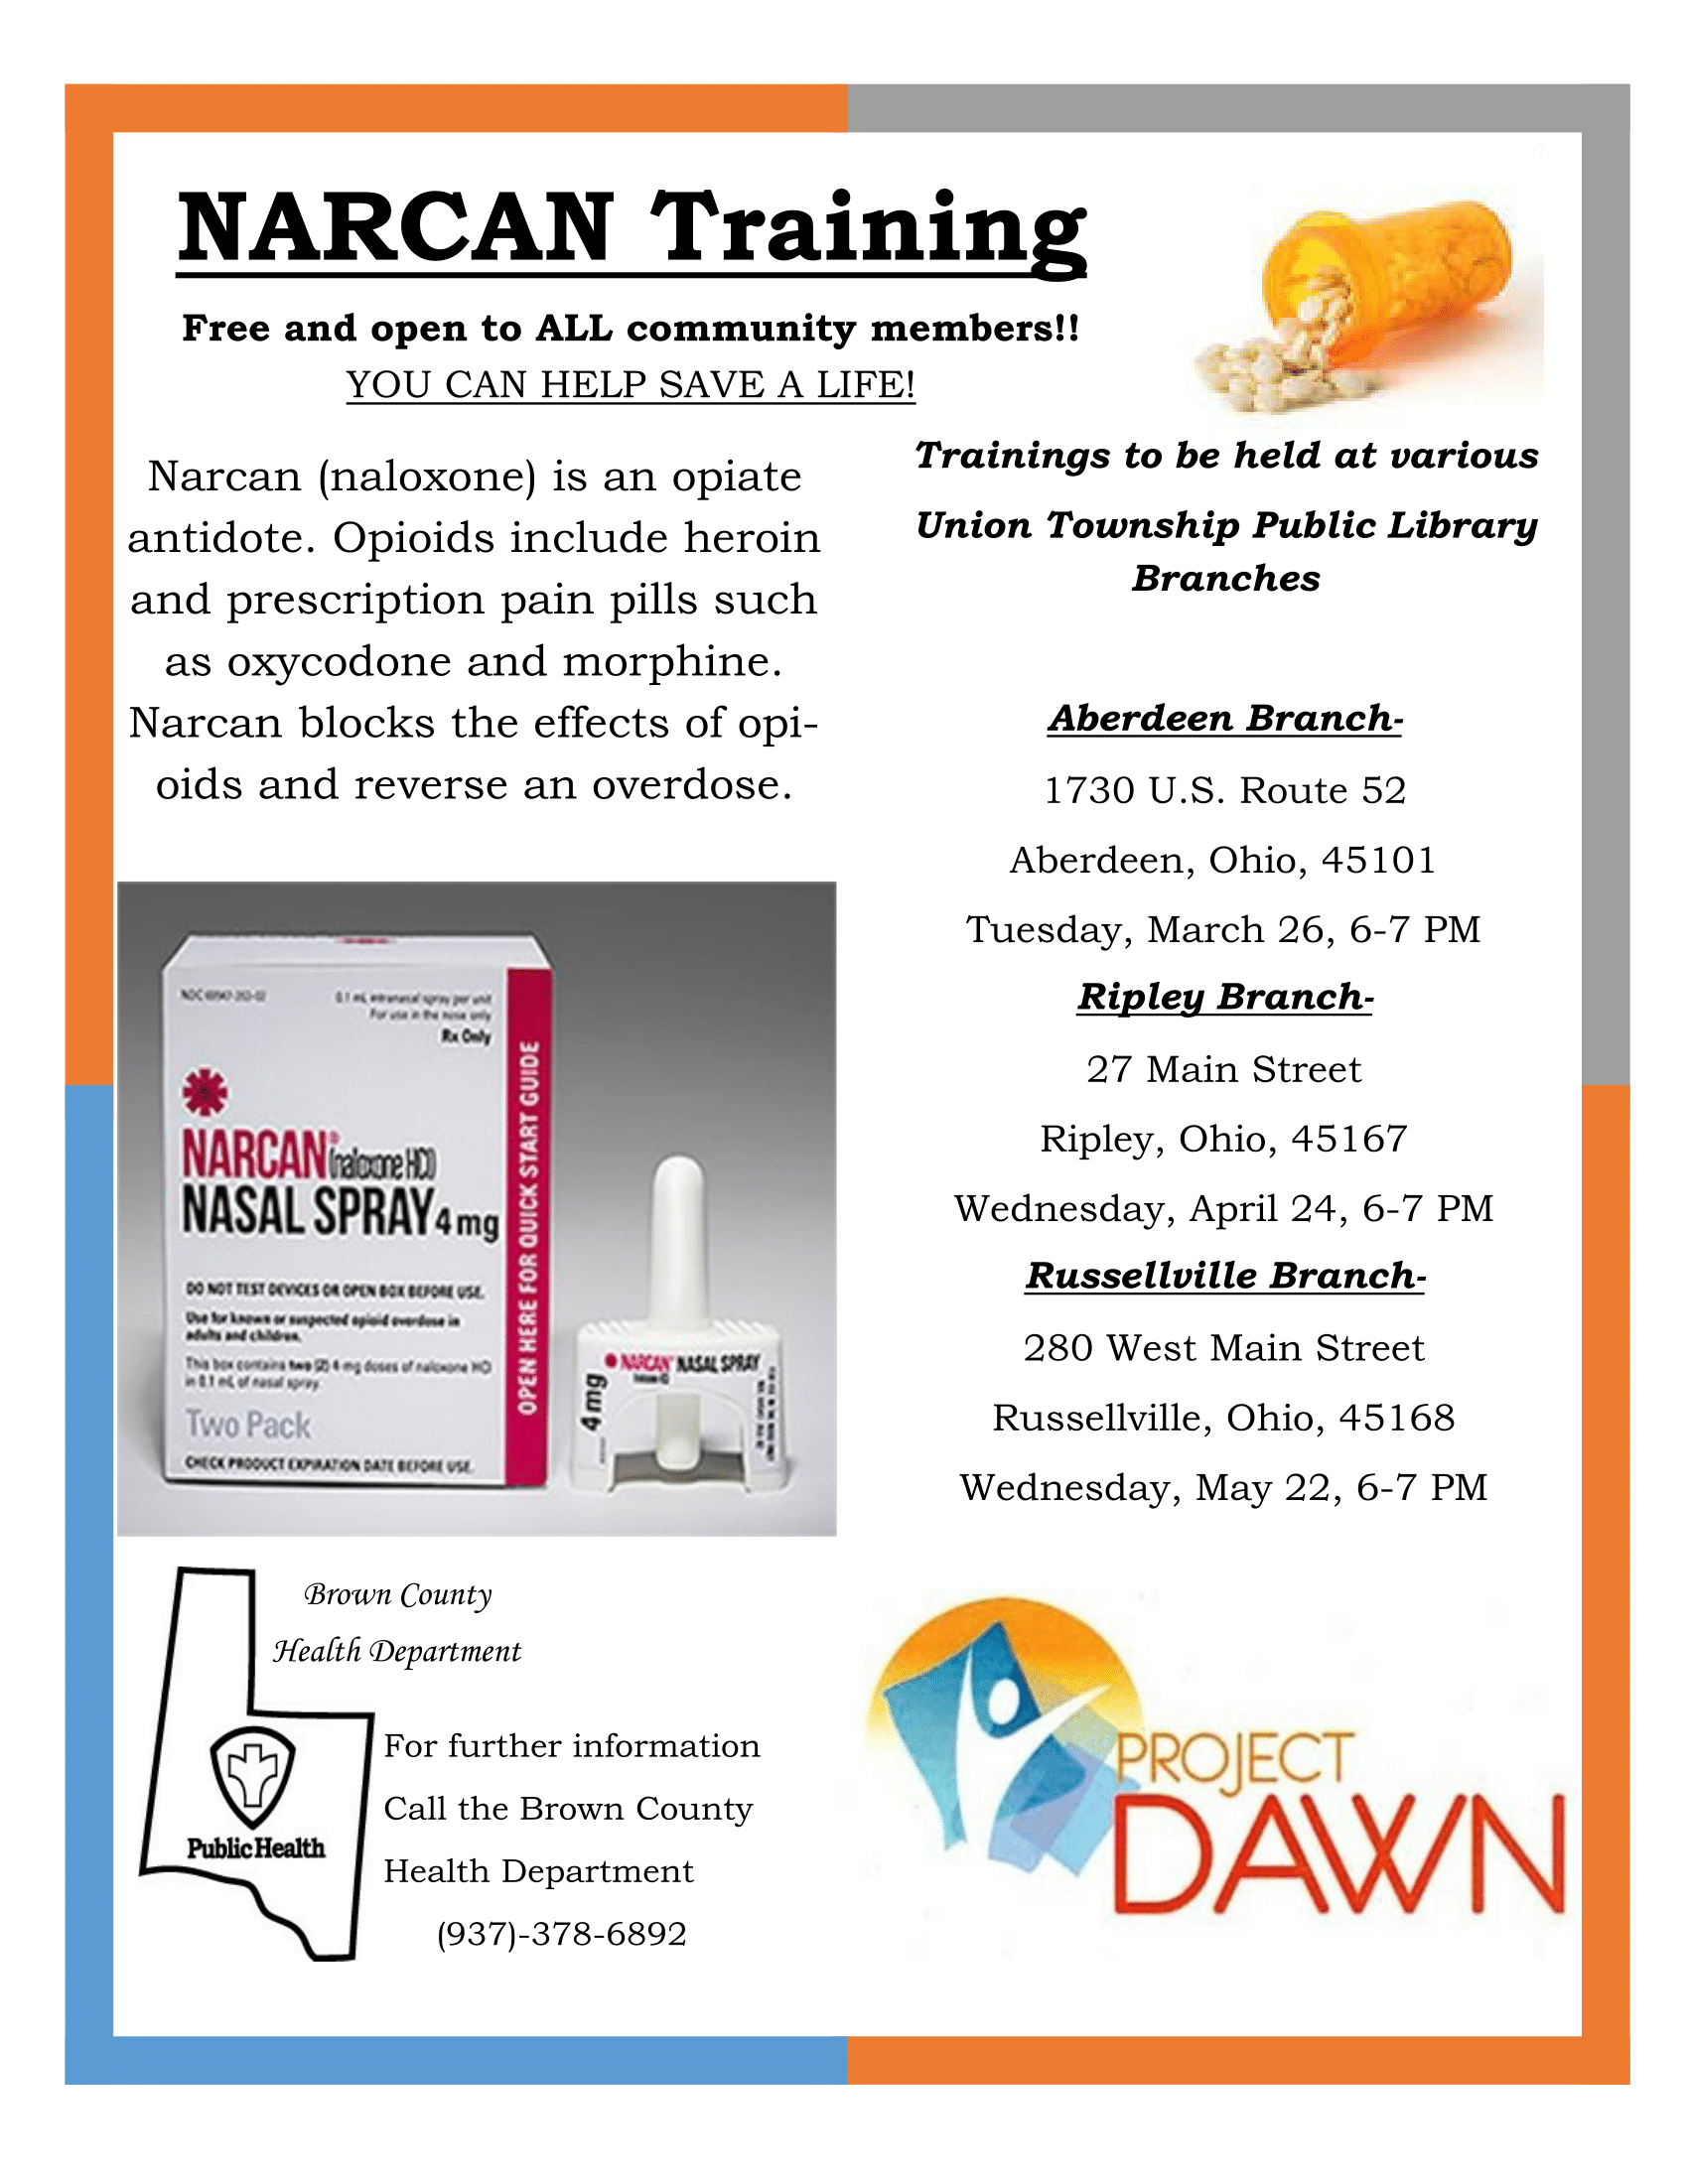 Narcan Training - Ripley Branch